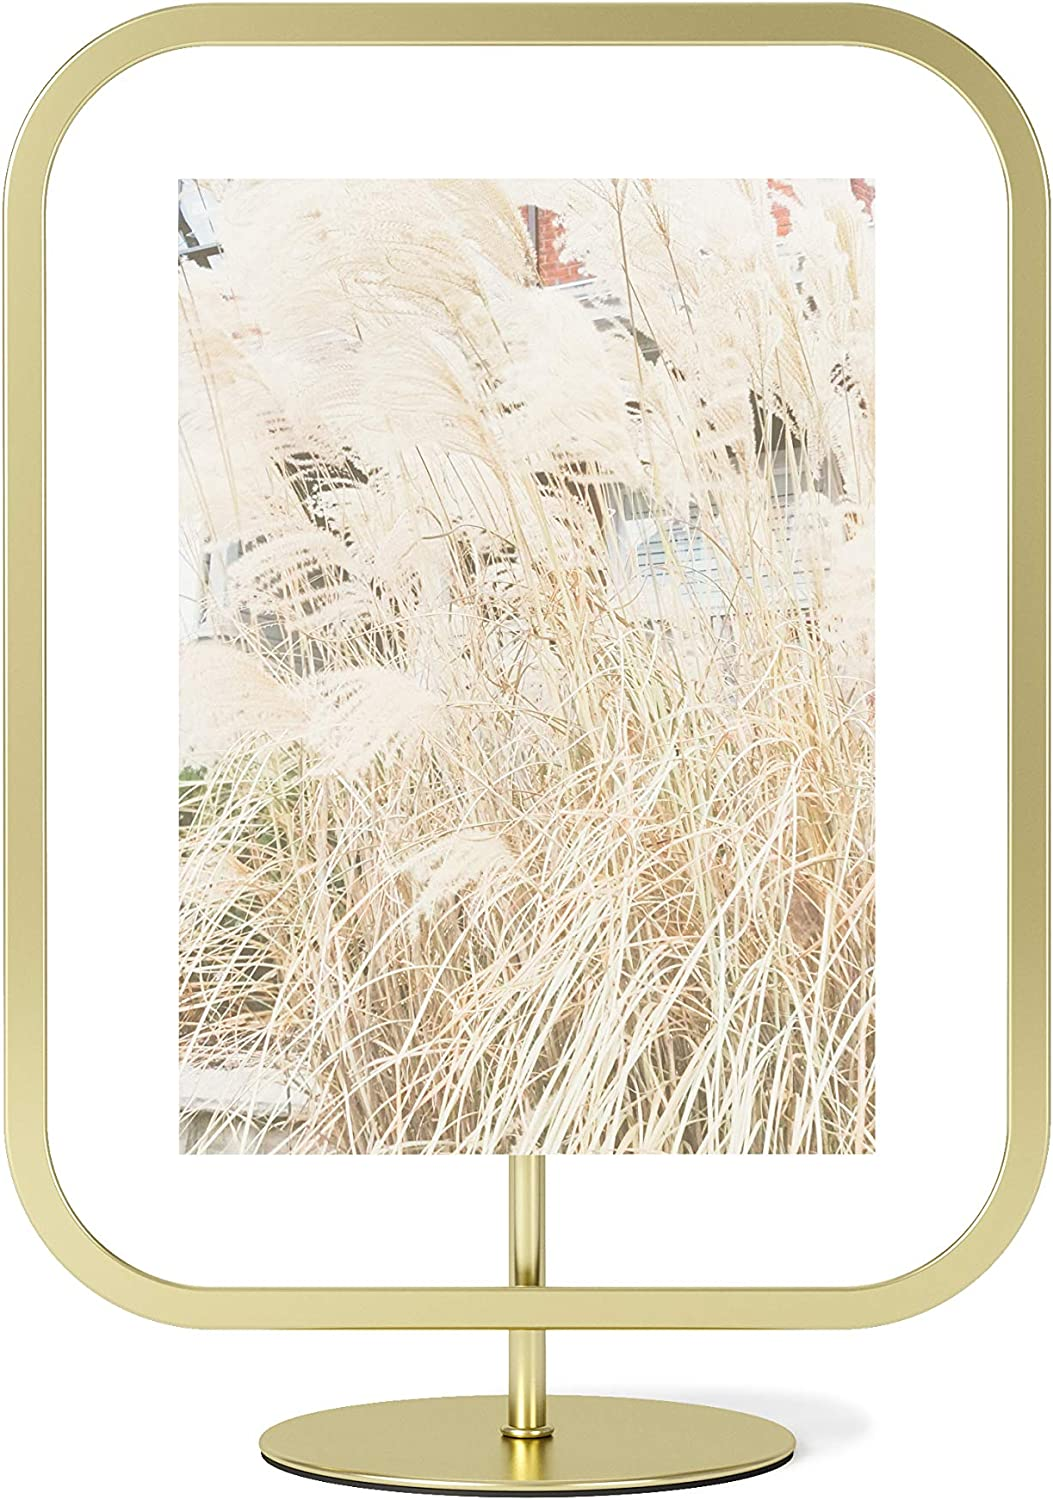 Umbra Infinity Picture Frame, Floating Photo Display for Desk or Wall, 5x7, Brass